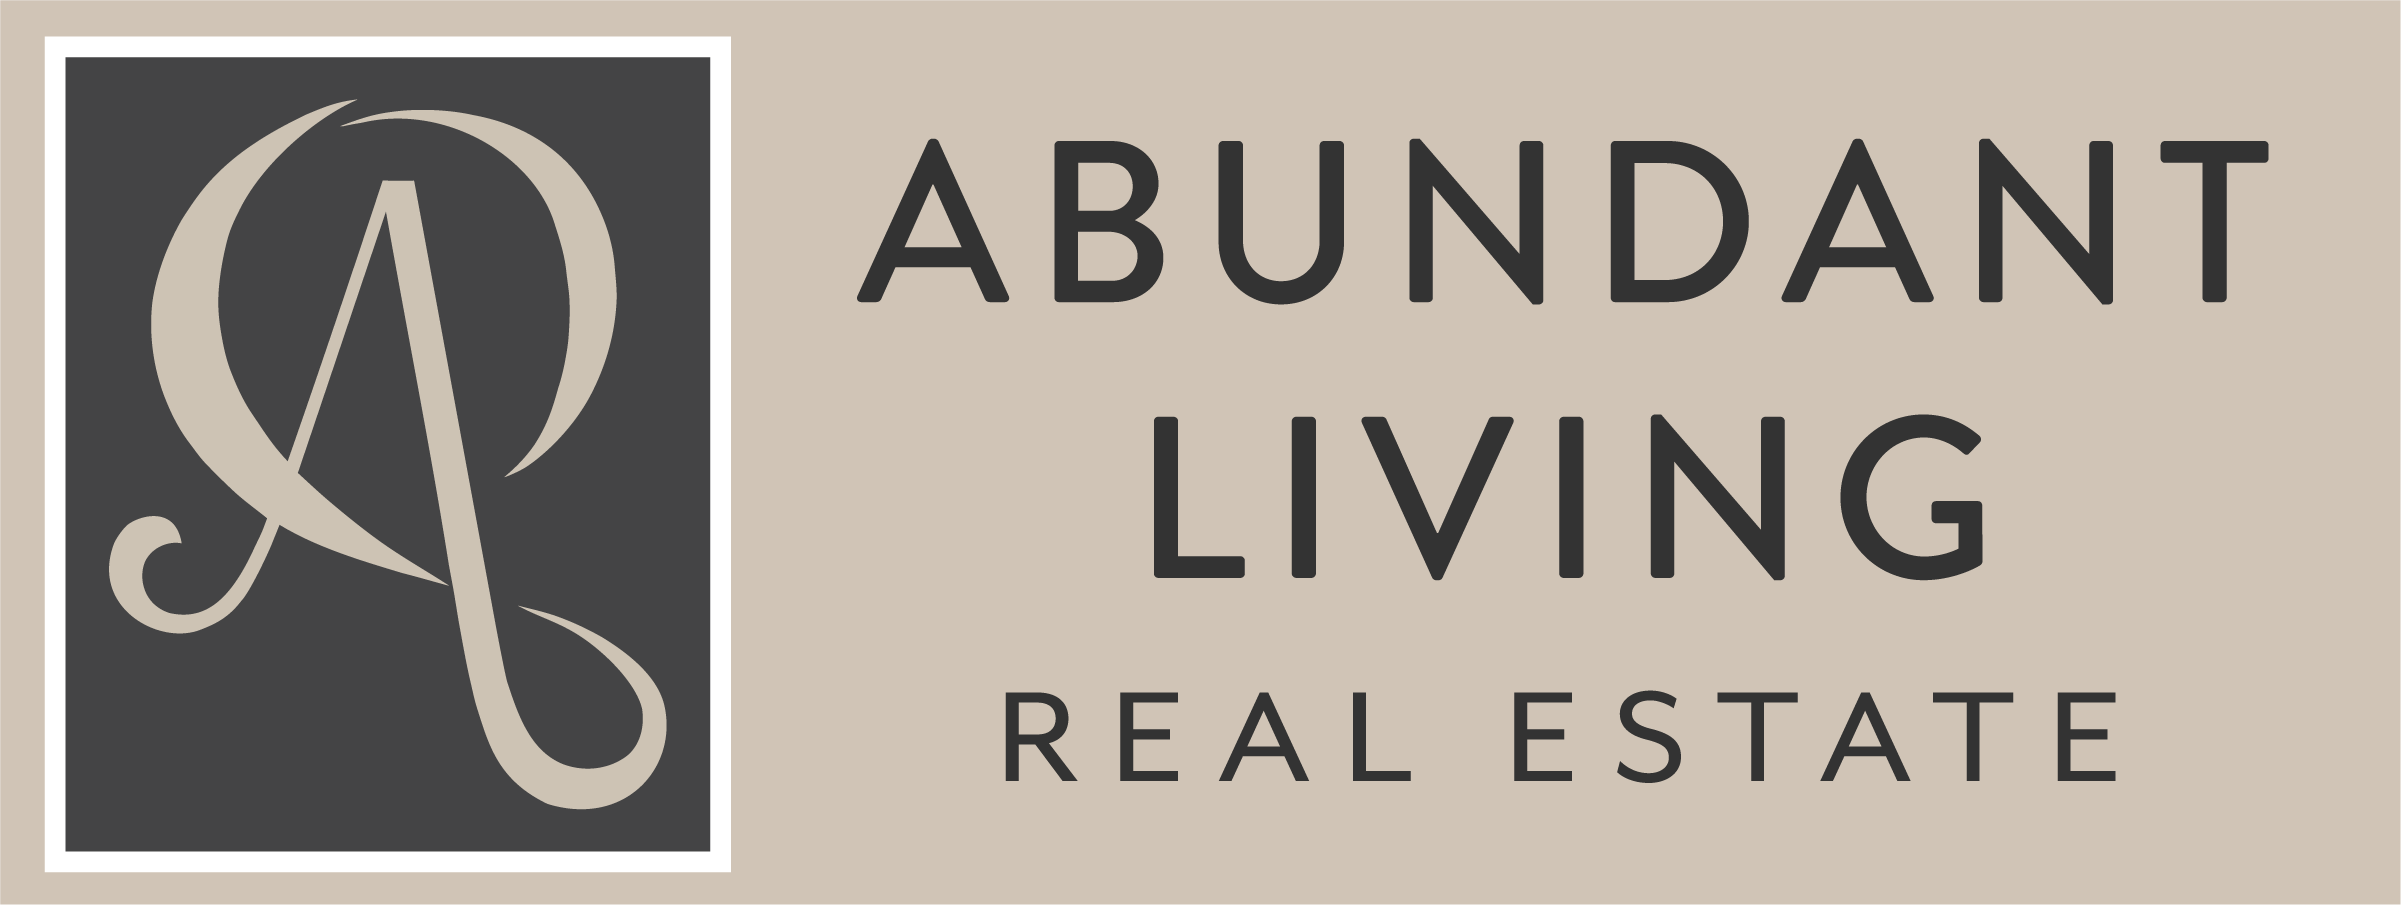 Abundant Living Real Estate